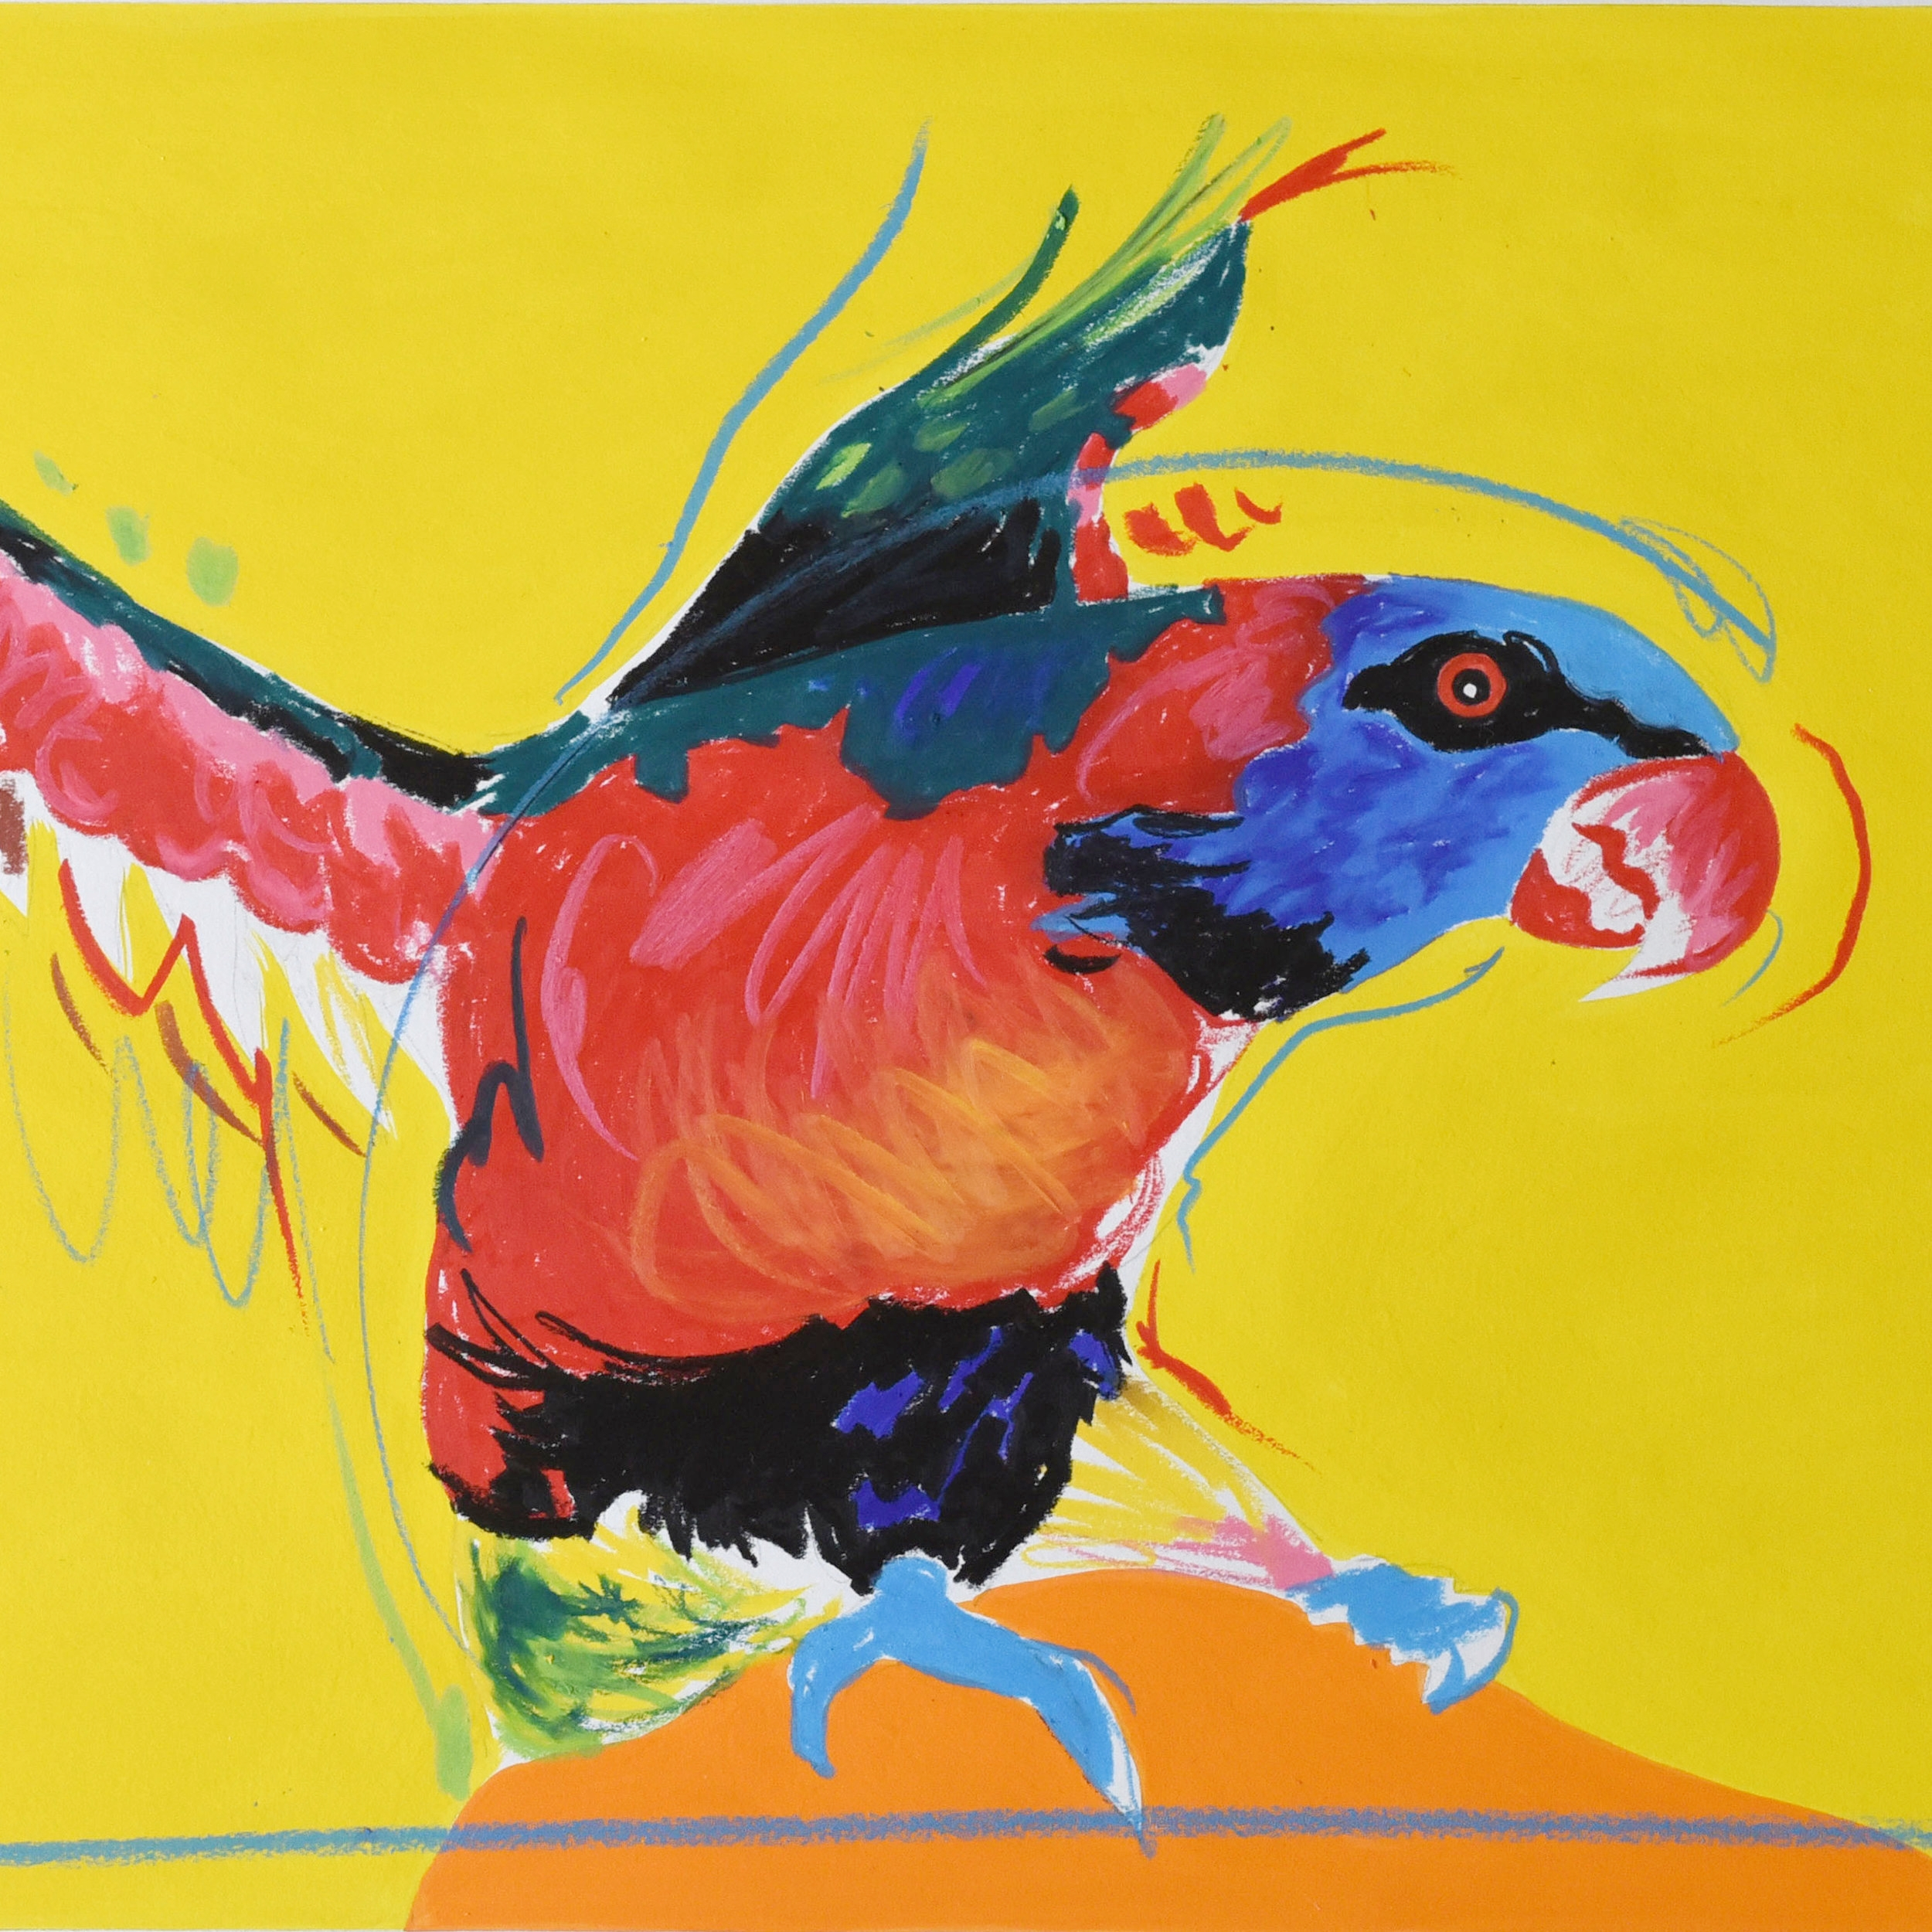 Painting of a Rainbow lorikeet using wax pencil and acrylic on art board